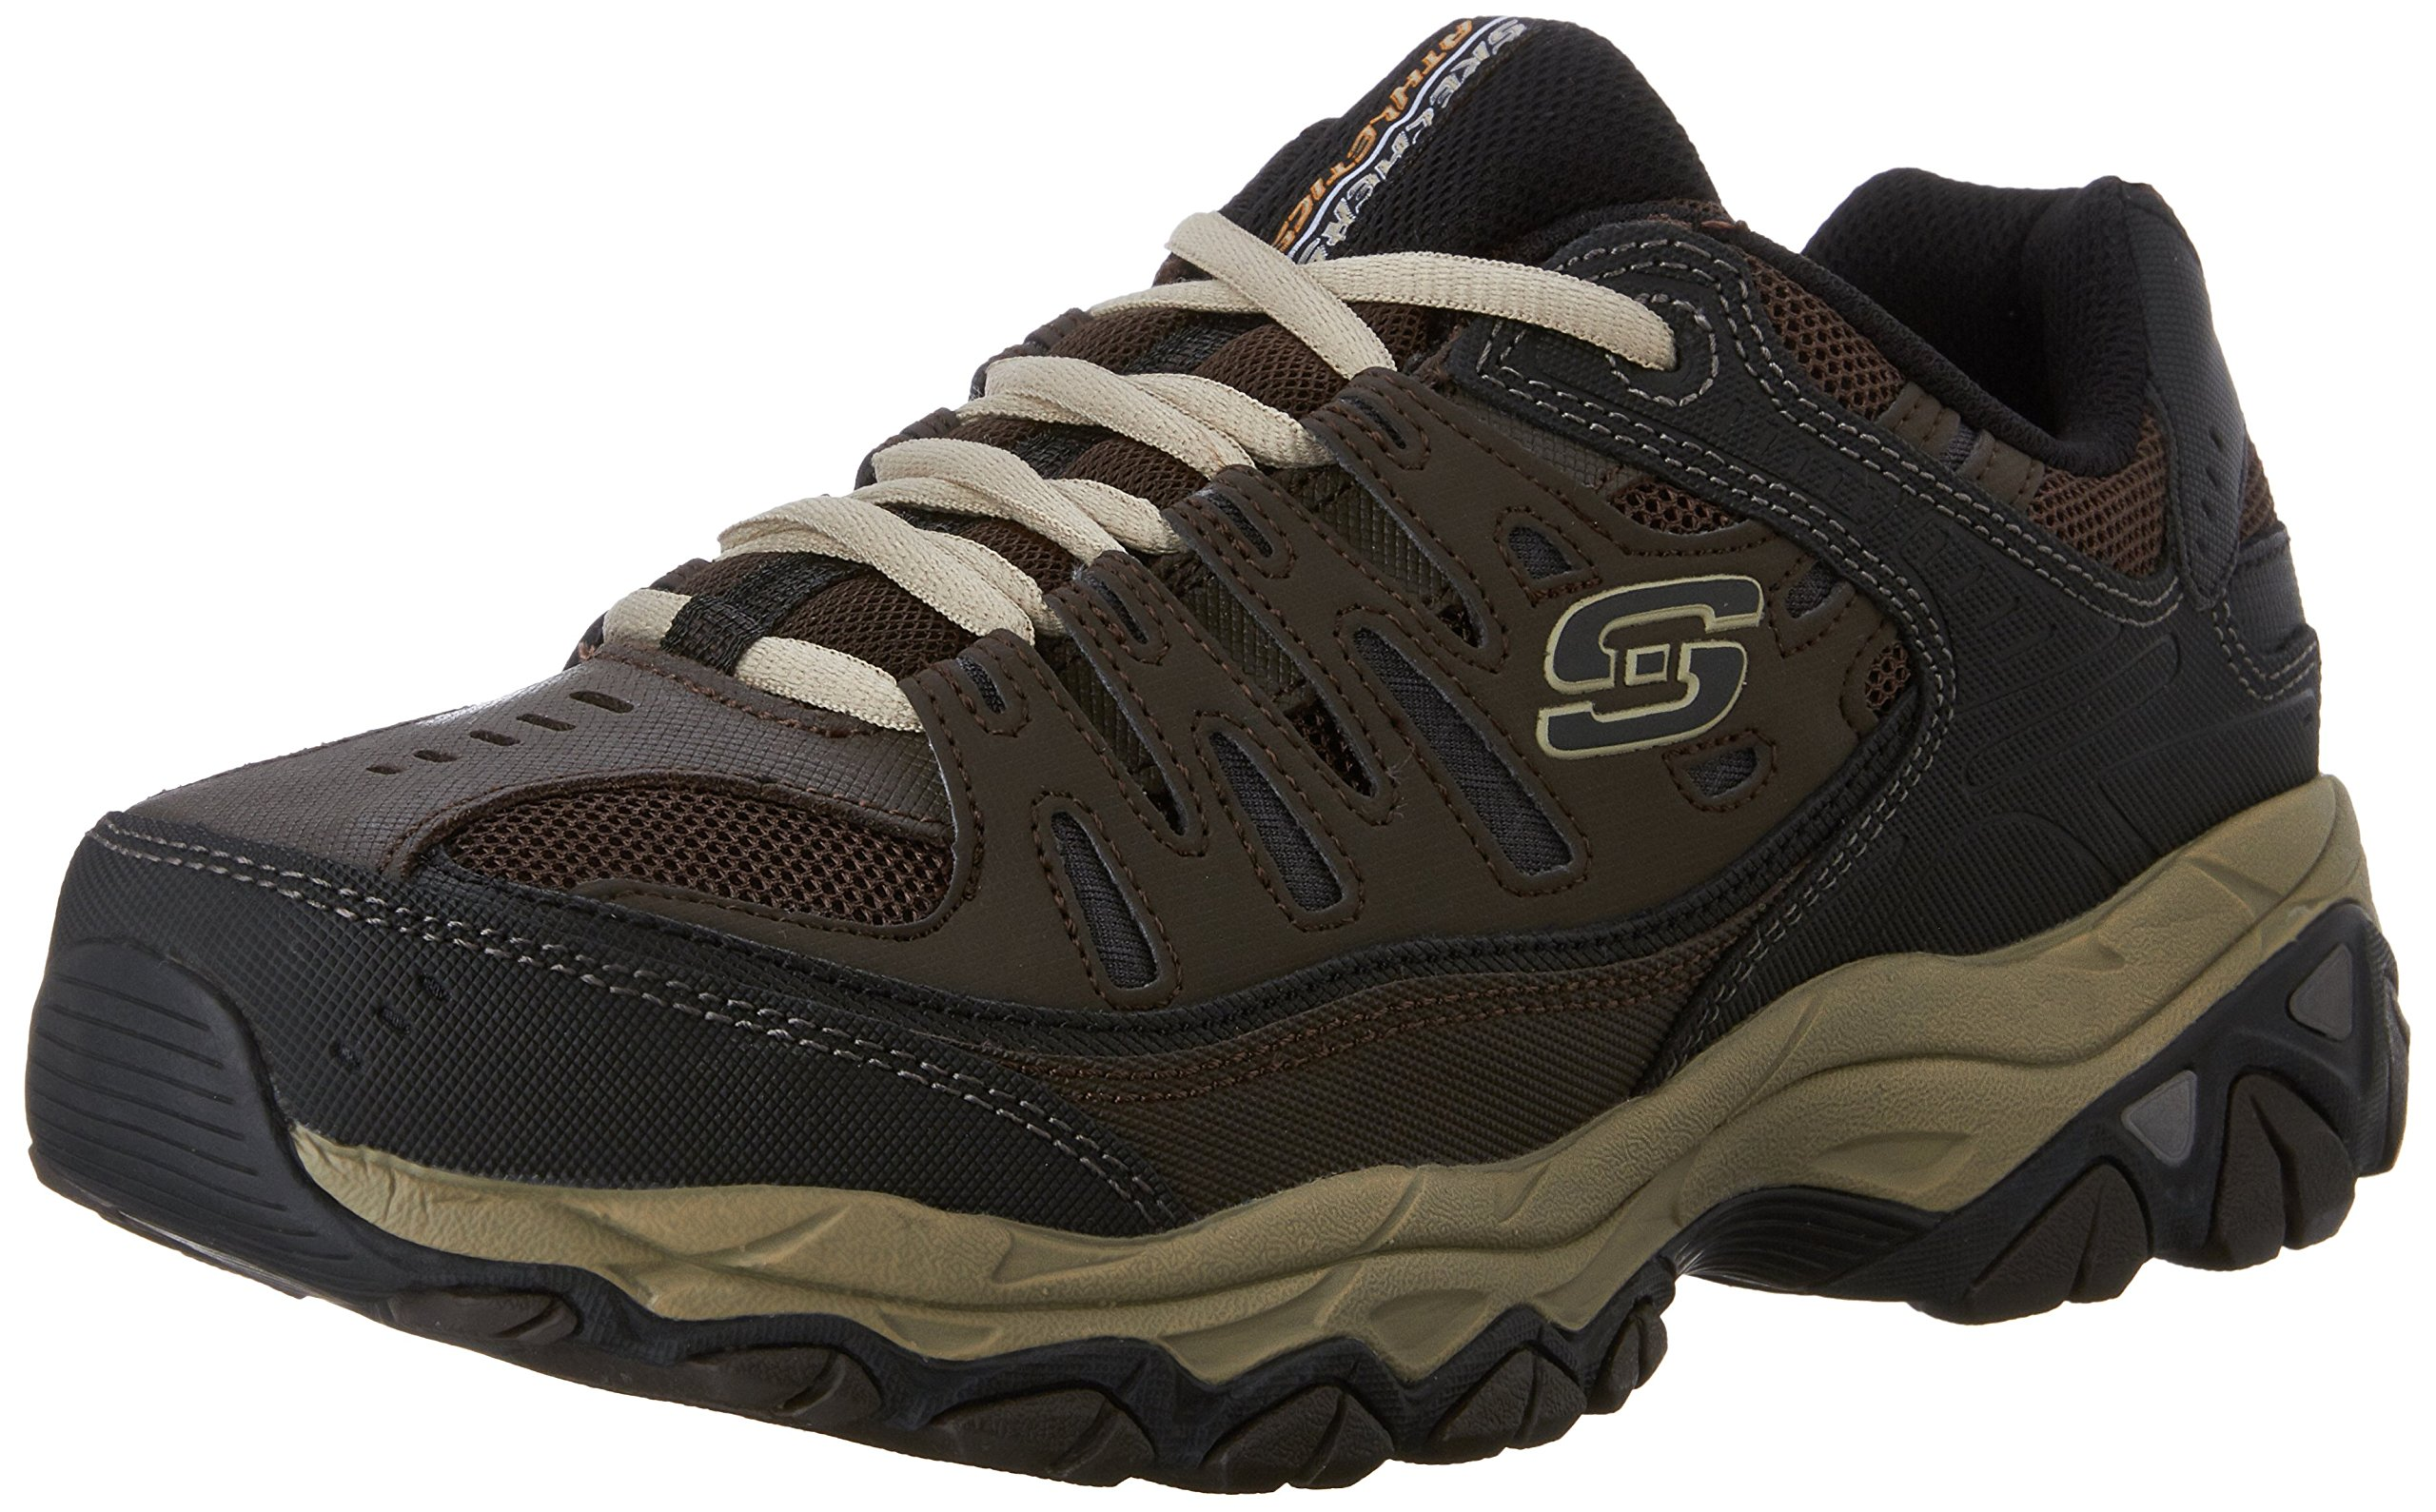 Skechers Men's AFTERBURNM.FIT Memory Foam Lace-Up Sneaker, Brown/Taupe, 10.5 4E US by Skechers